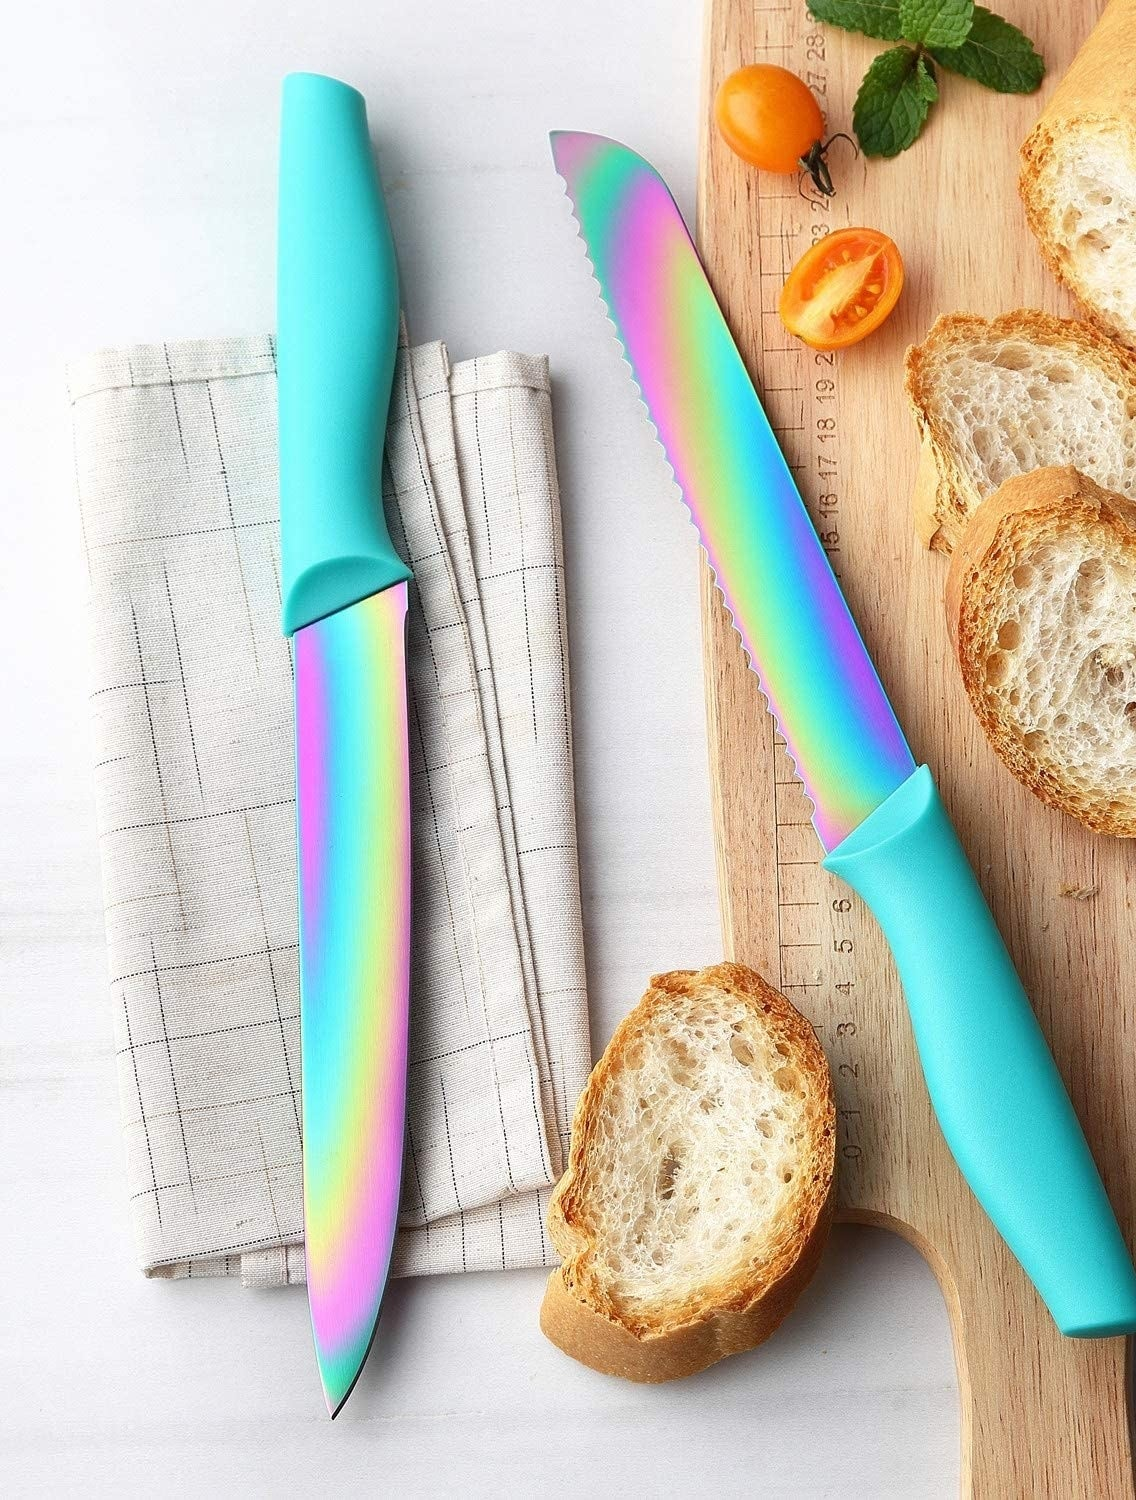 Two rainbow knives with turquoise handles and sliced bread on a cutting board.